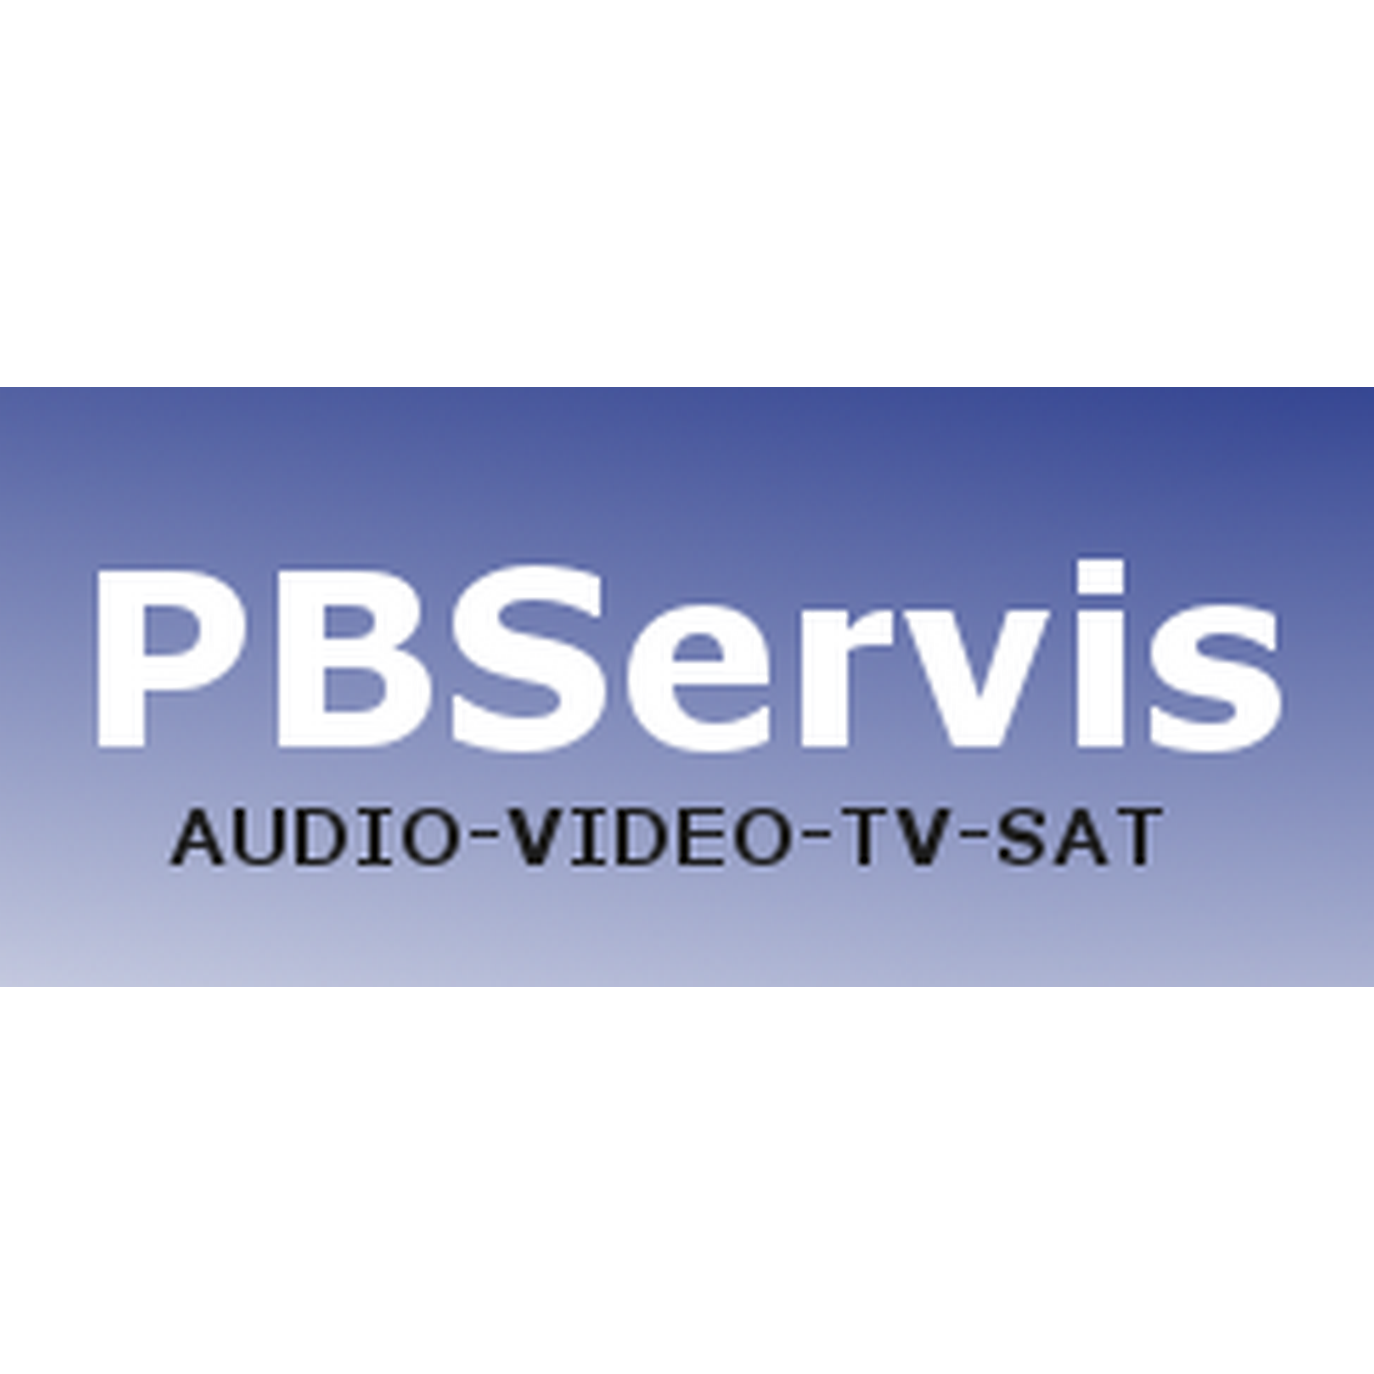 logo PBServis - audio, video, TV, SAT